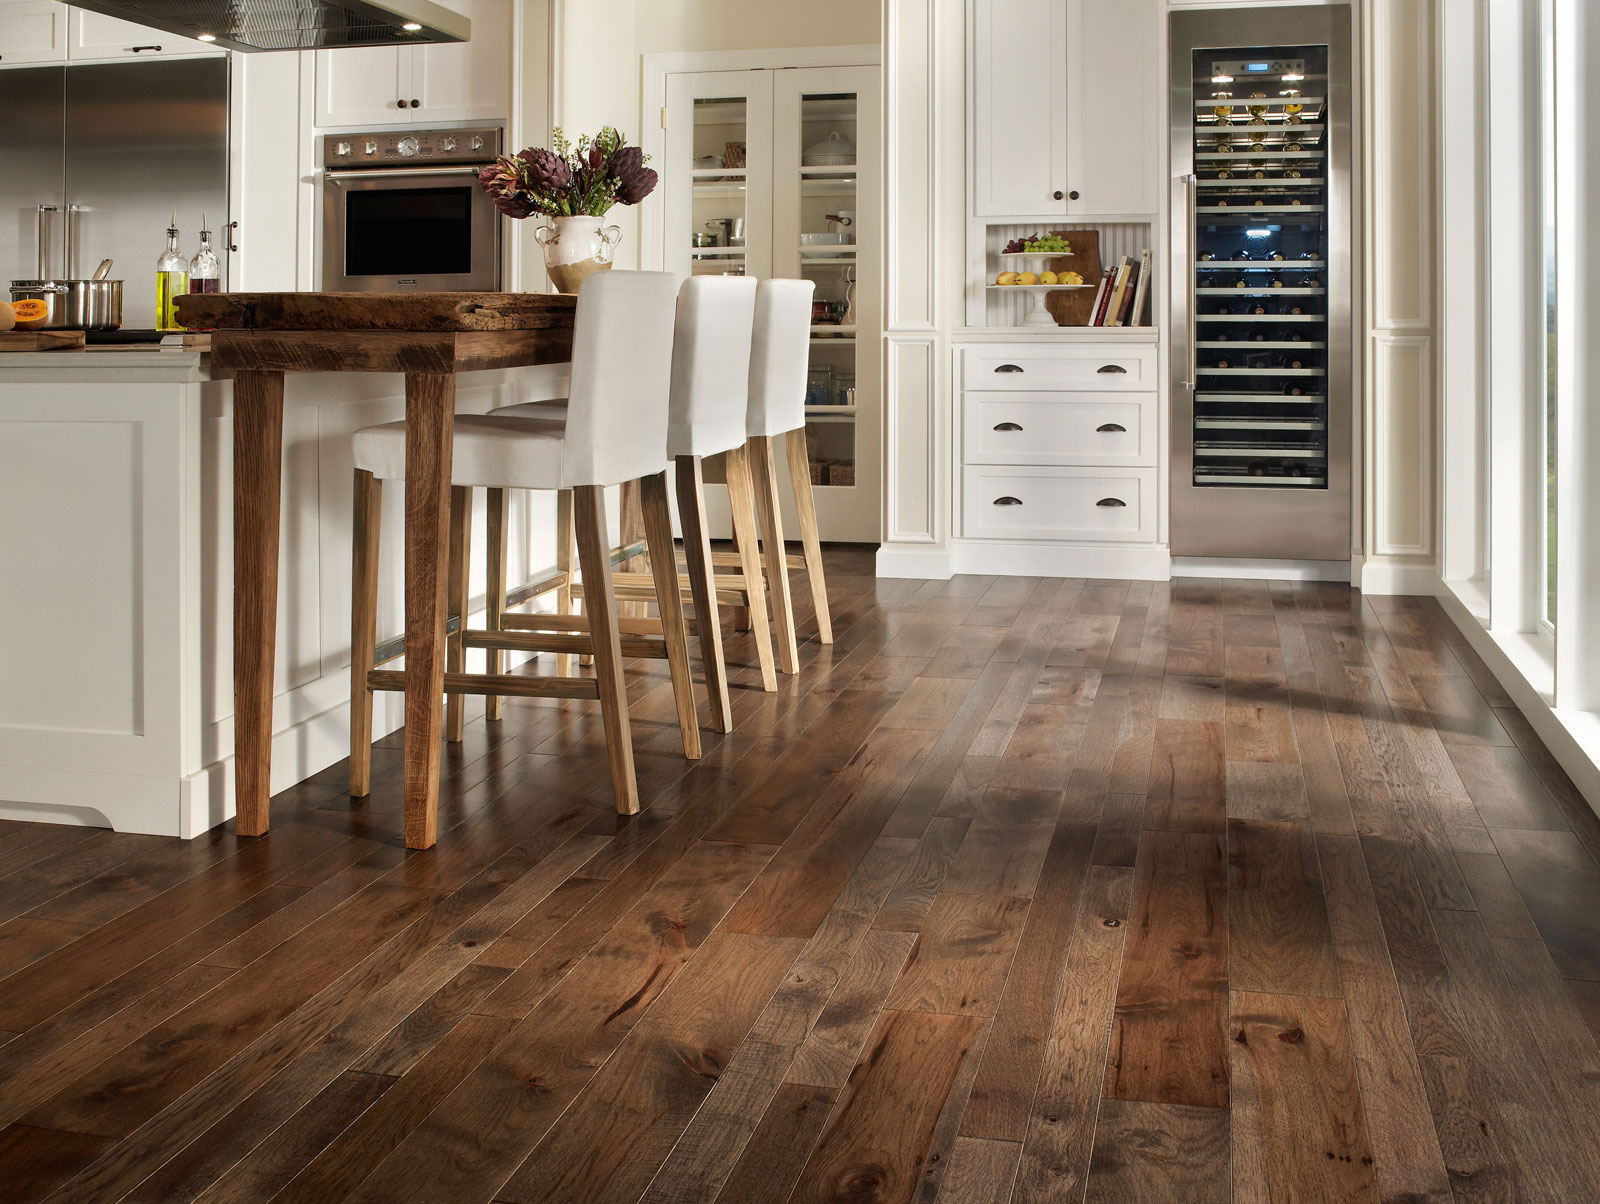 Most Popular Hardwood Floor Colors That Make Your Floor Outlook - Most popular stain color for hardwood floors